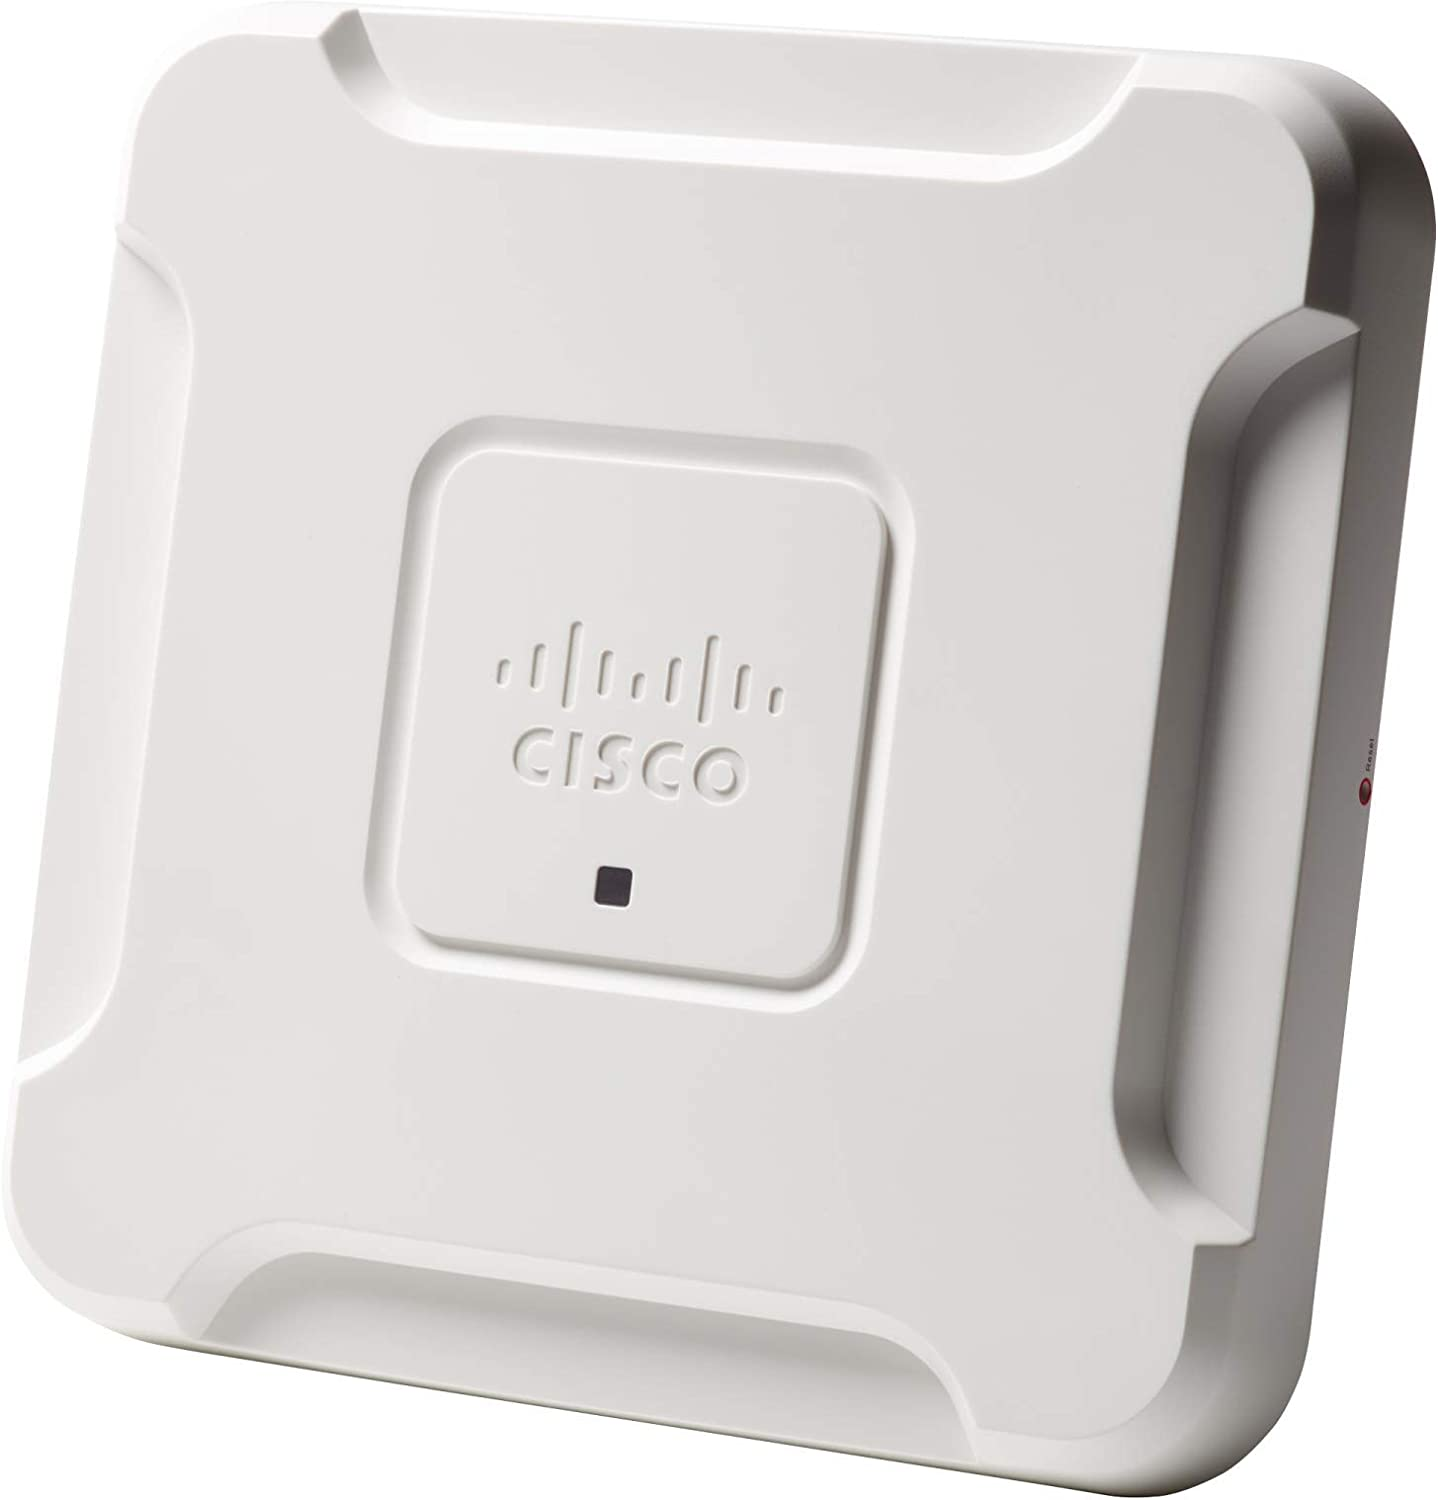 Cisco WAP581 Wireless AC Wave 2 Access Point with 2.5GbE LAN, Dual Radio, Limited Lifetime Protection (WAP581-A-K9)